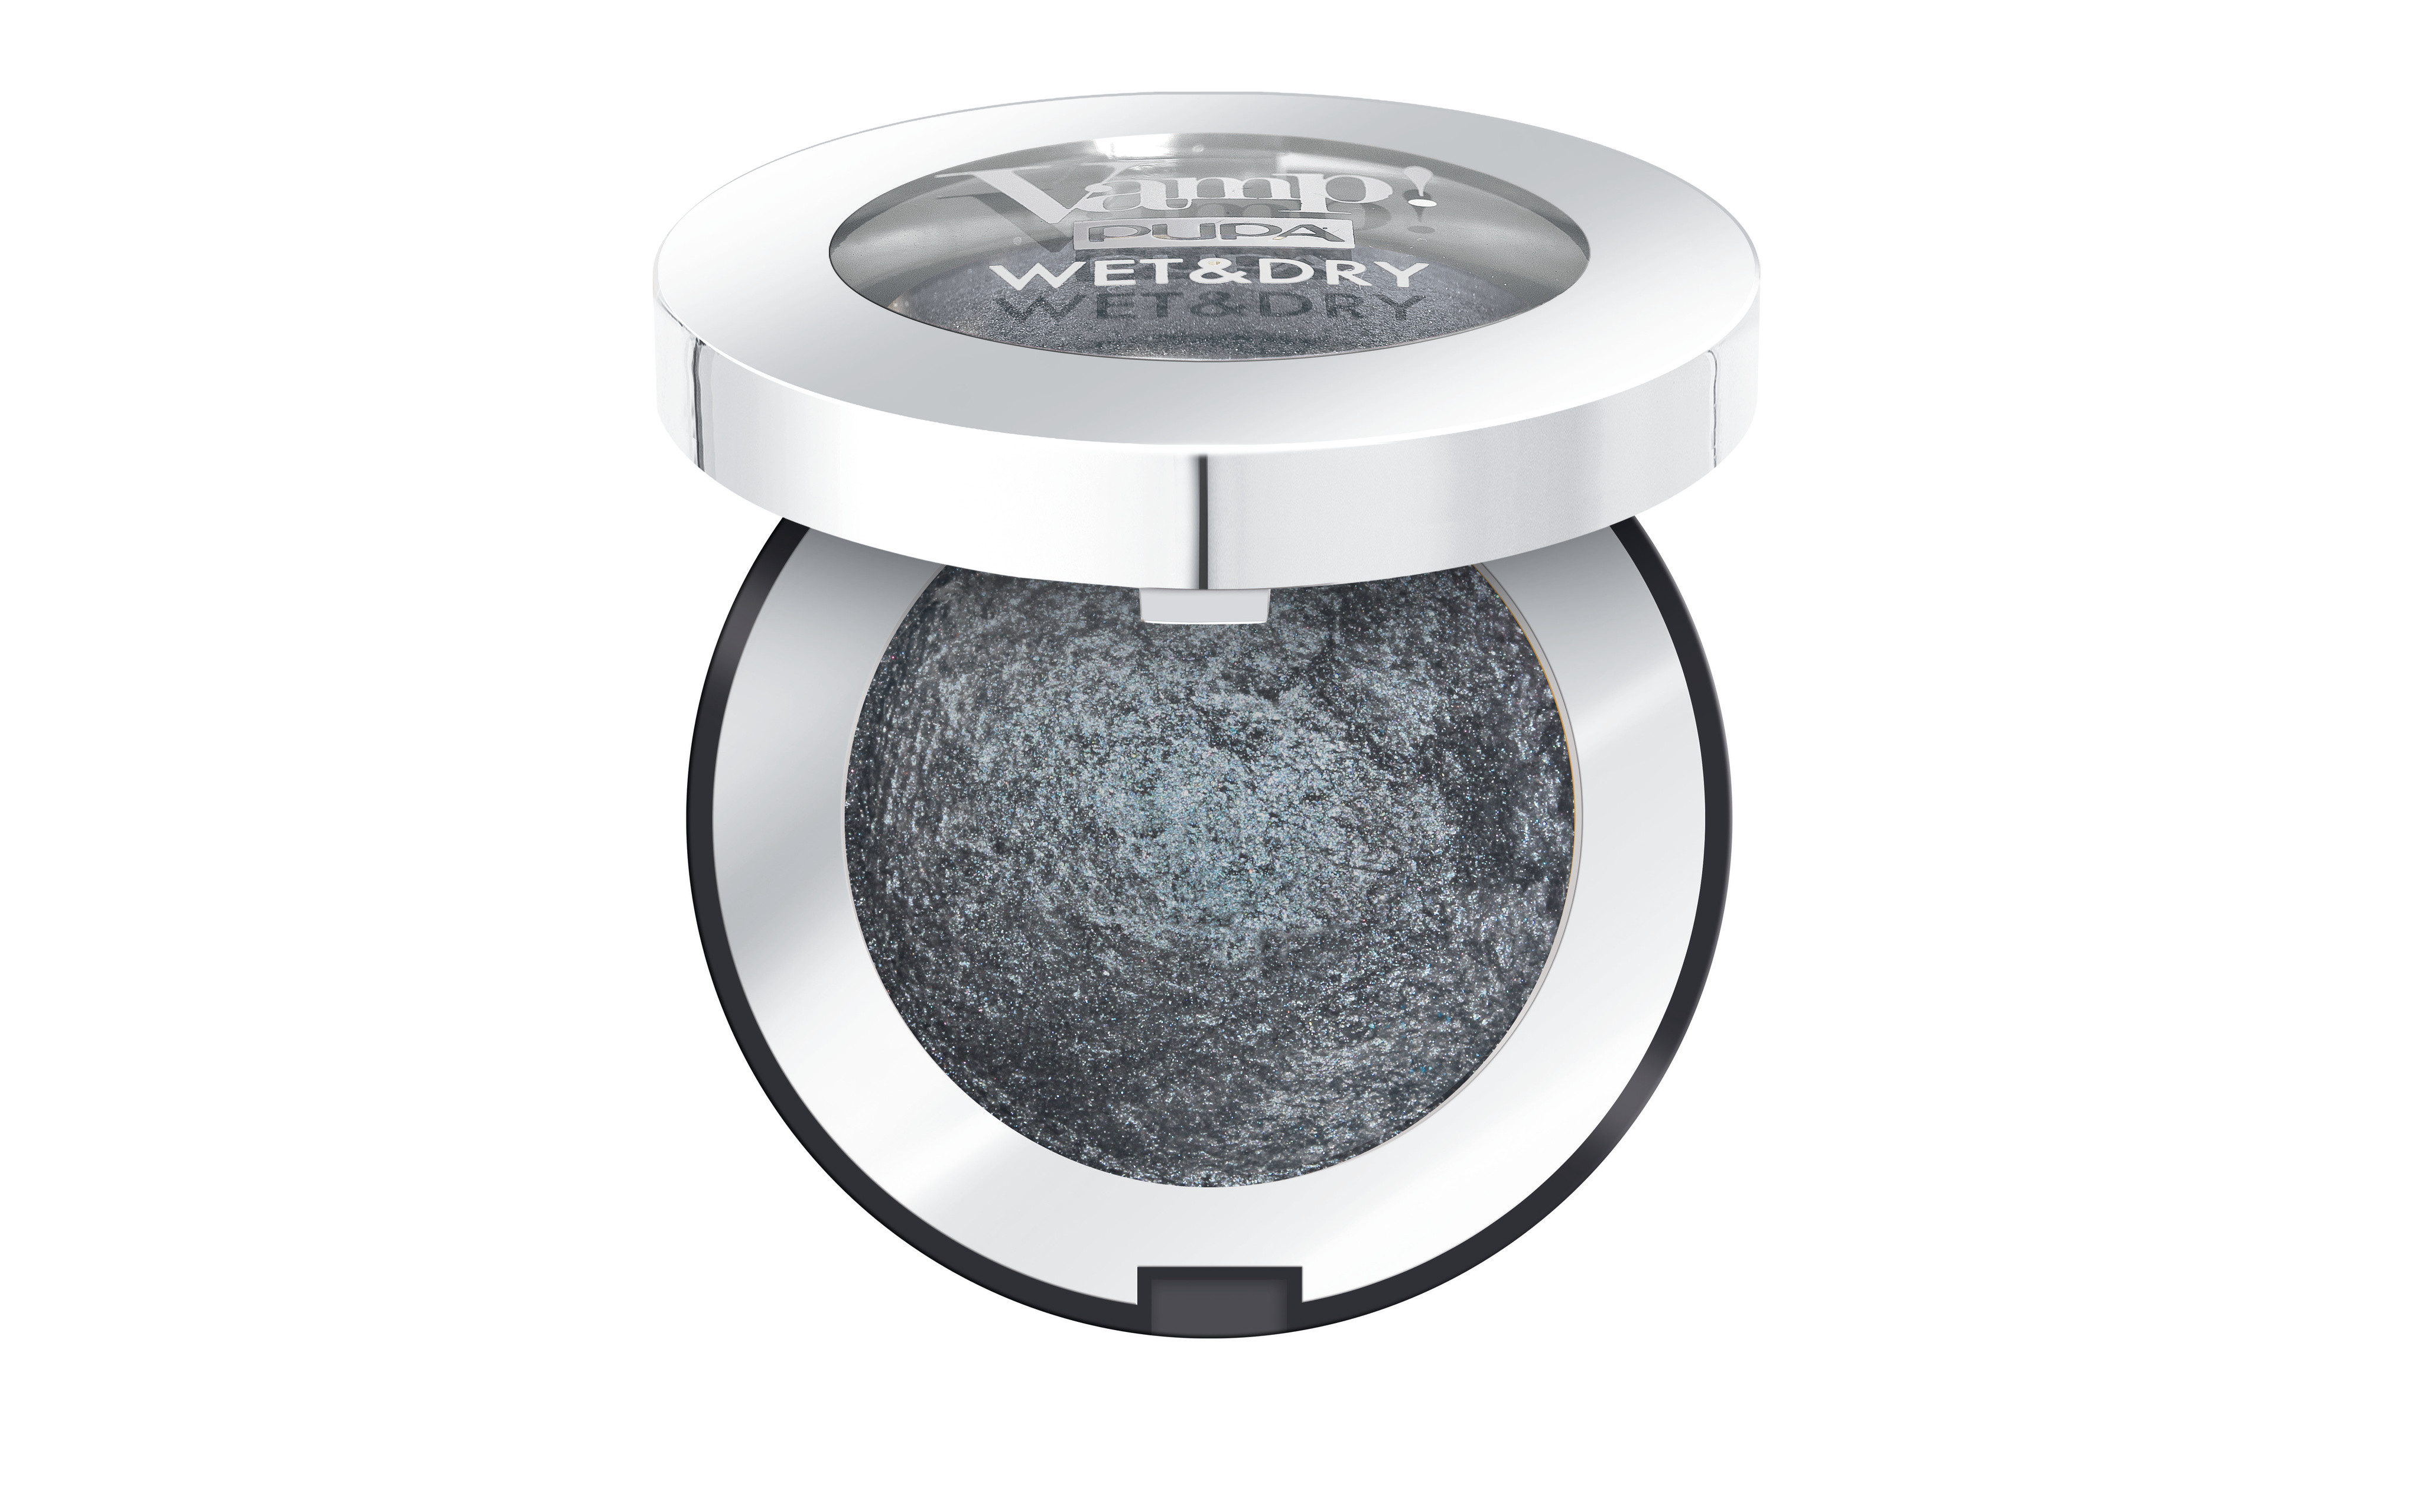 Pupa vamp! Wet&dry ombretto - 305, 305ANTHRACITE GREY, large image number 0